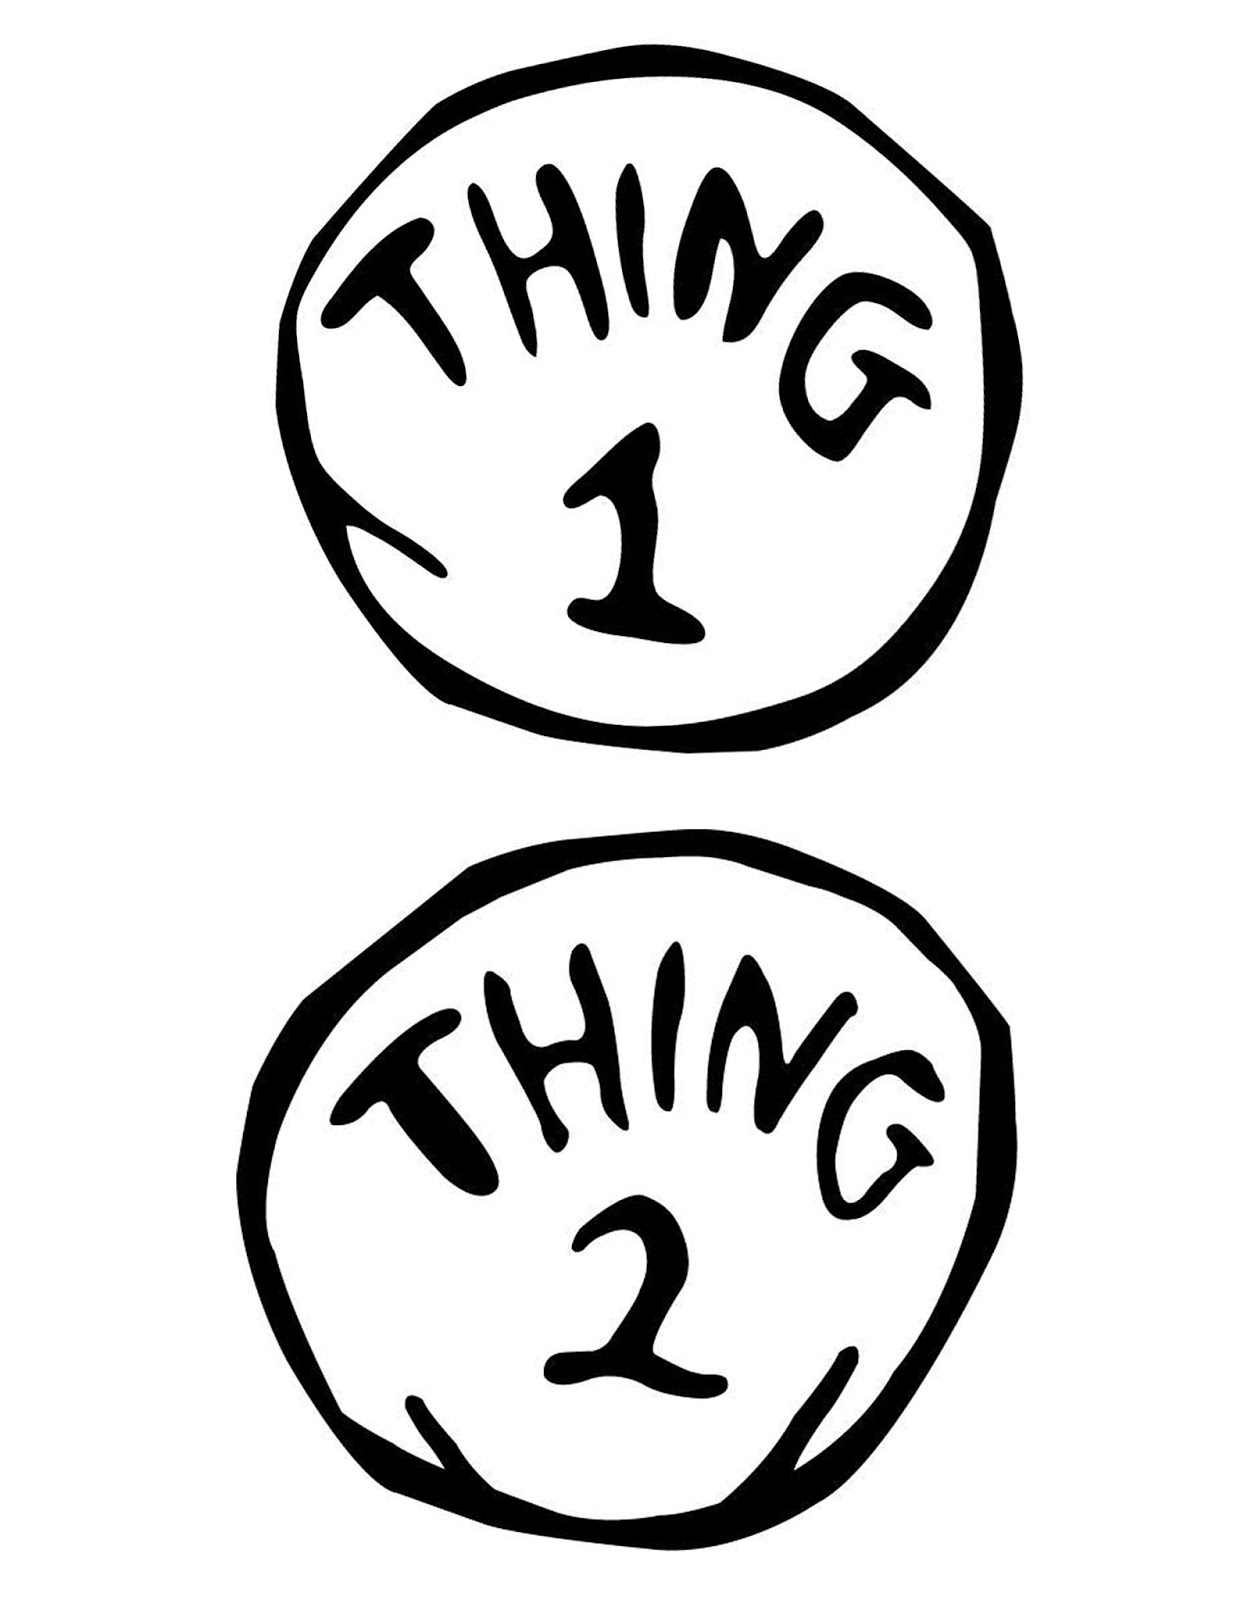 photo relating to Thing 1 and Thing 2 Printable Template identify Matter 1 And Issue 2 Printable Totally free down load least difficult Issue 1